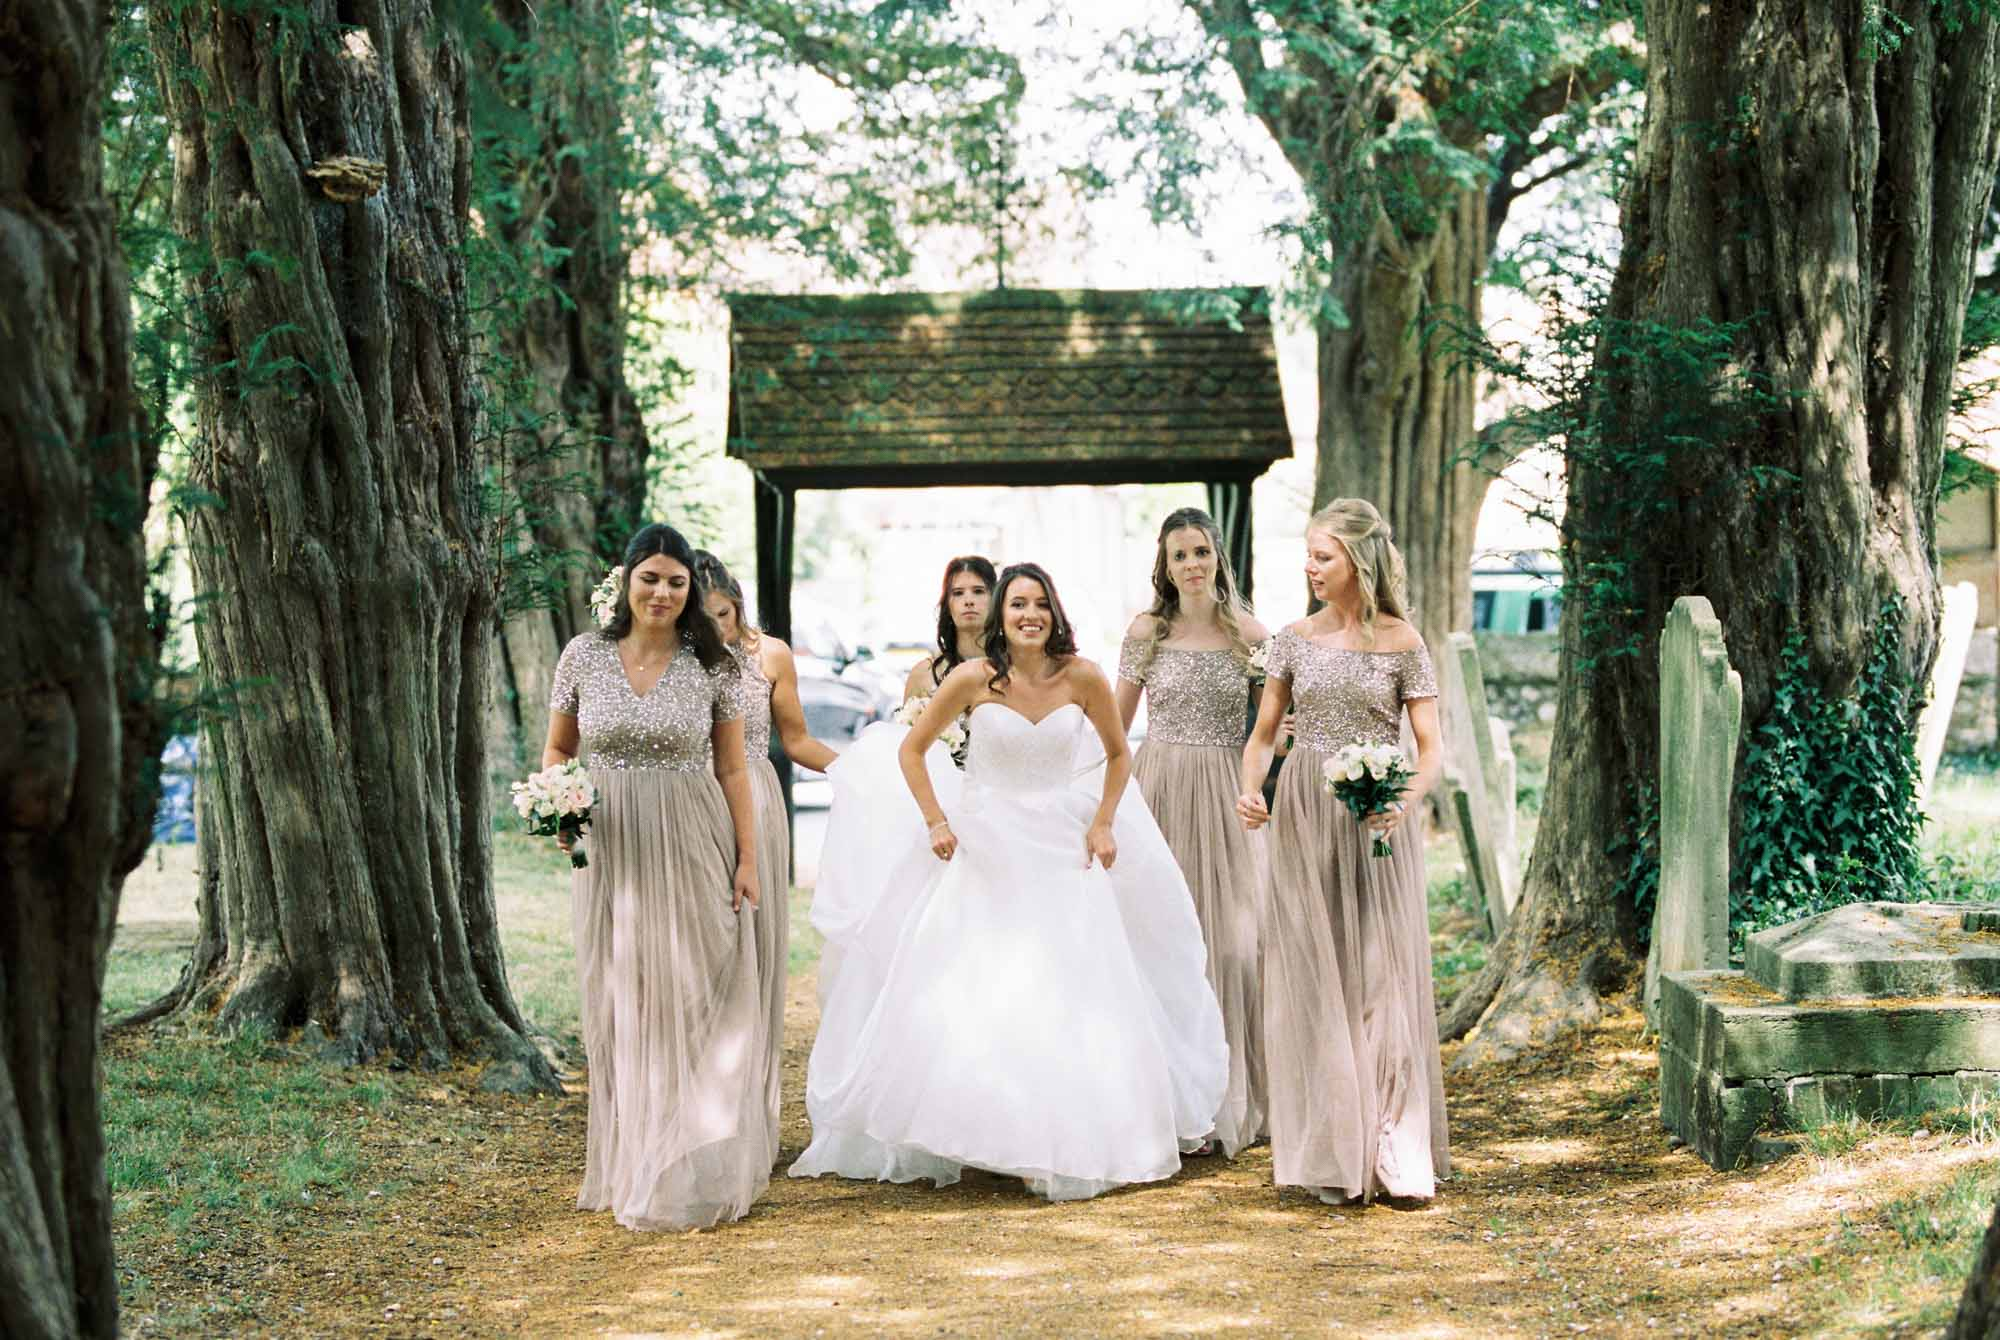 Bride walking with bridesmaids up the path of the church before wedding ceremony